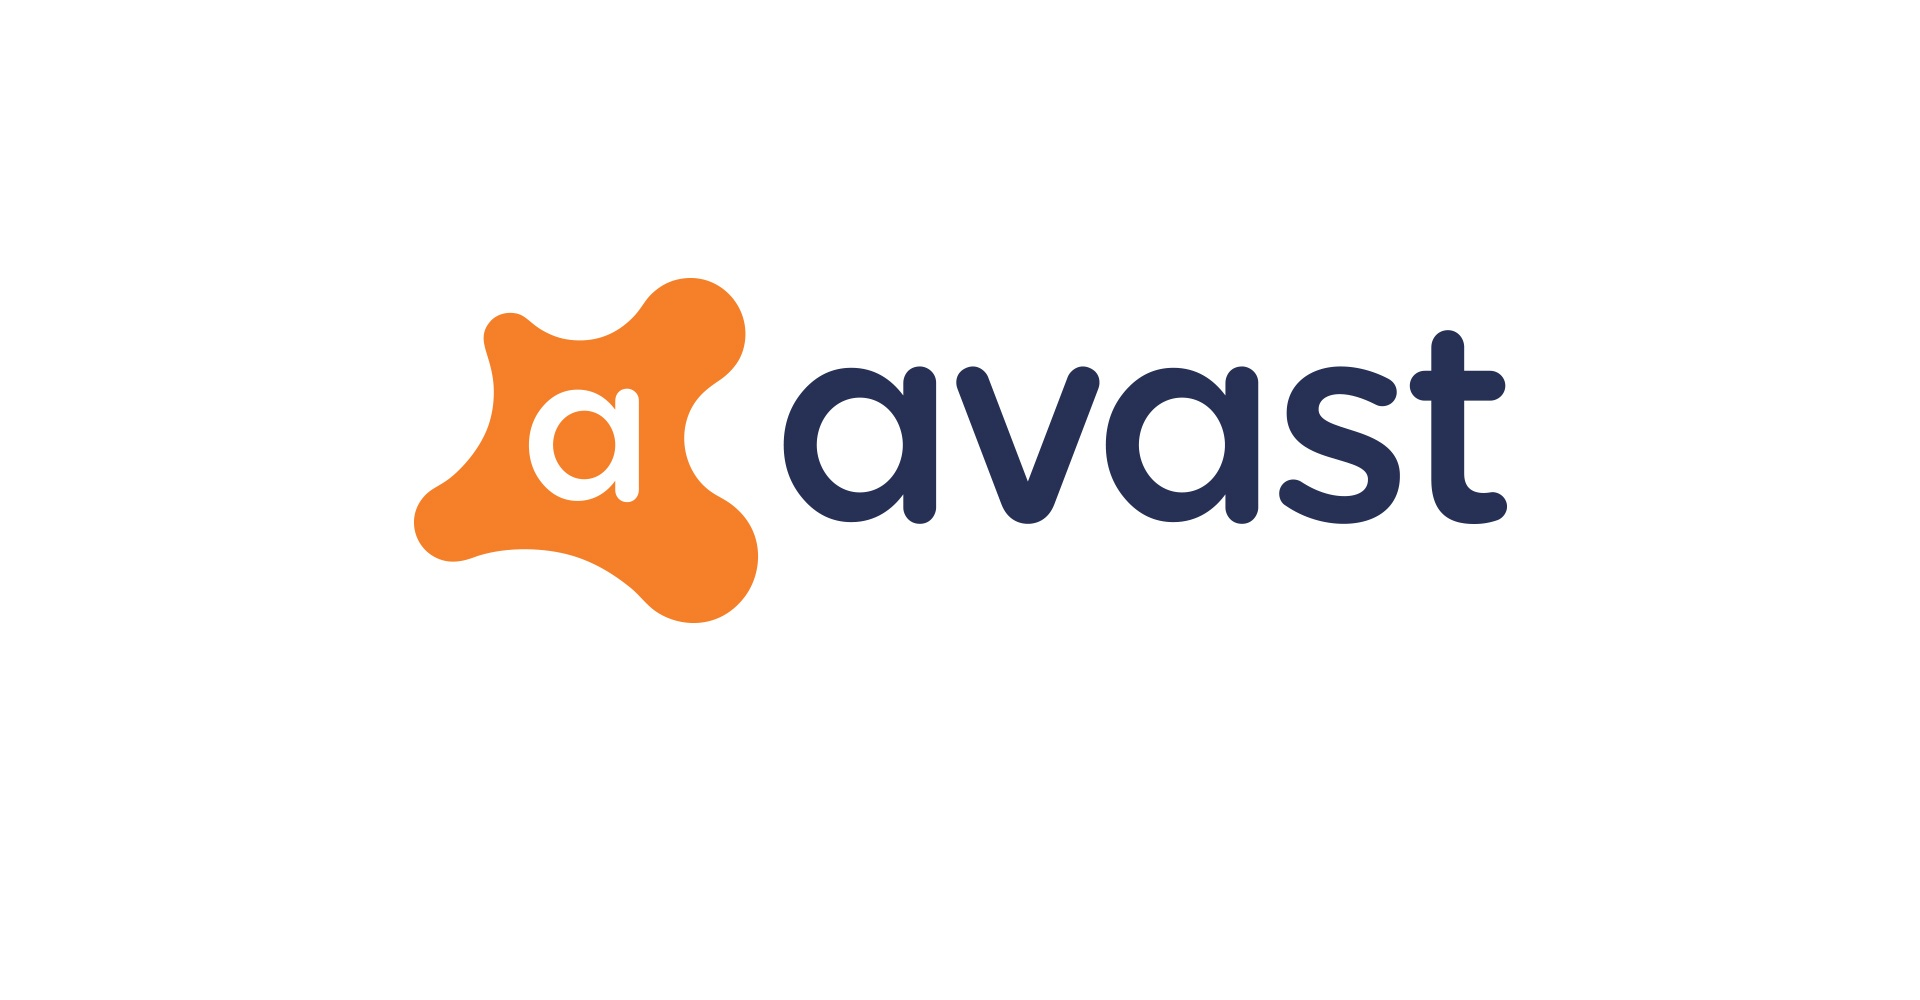 Avast about us